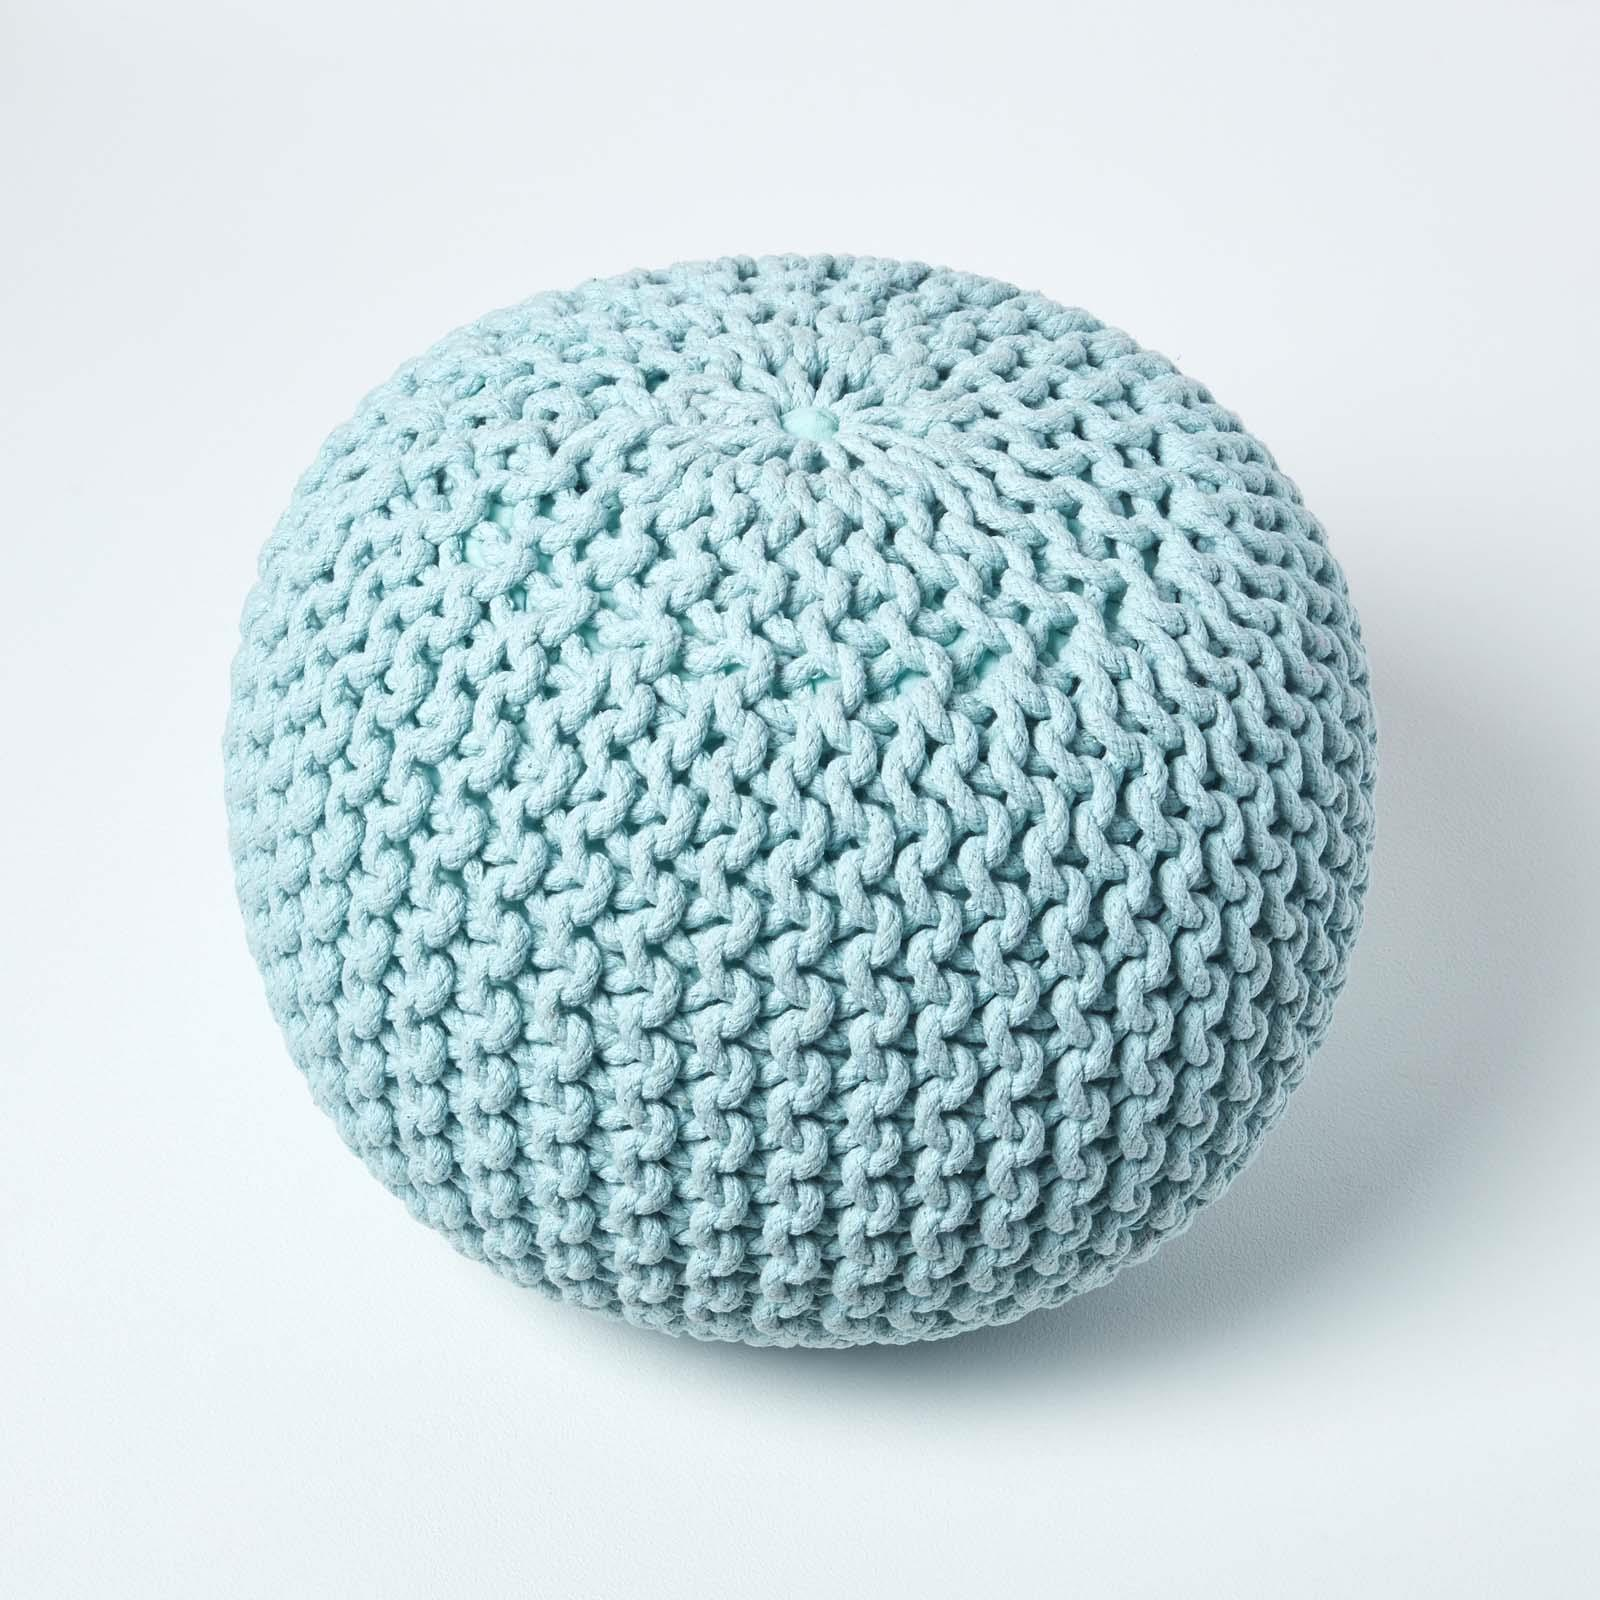 Hand-Knitted-100-Cotton-Pouffes-Round-Sphere-Or-Cube-Square-Chunky-Footstools thumbnail 130